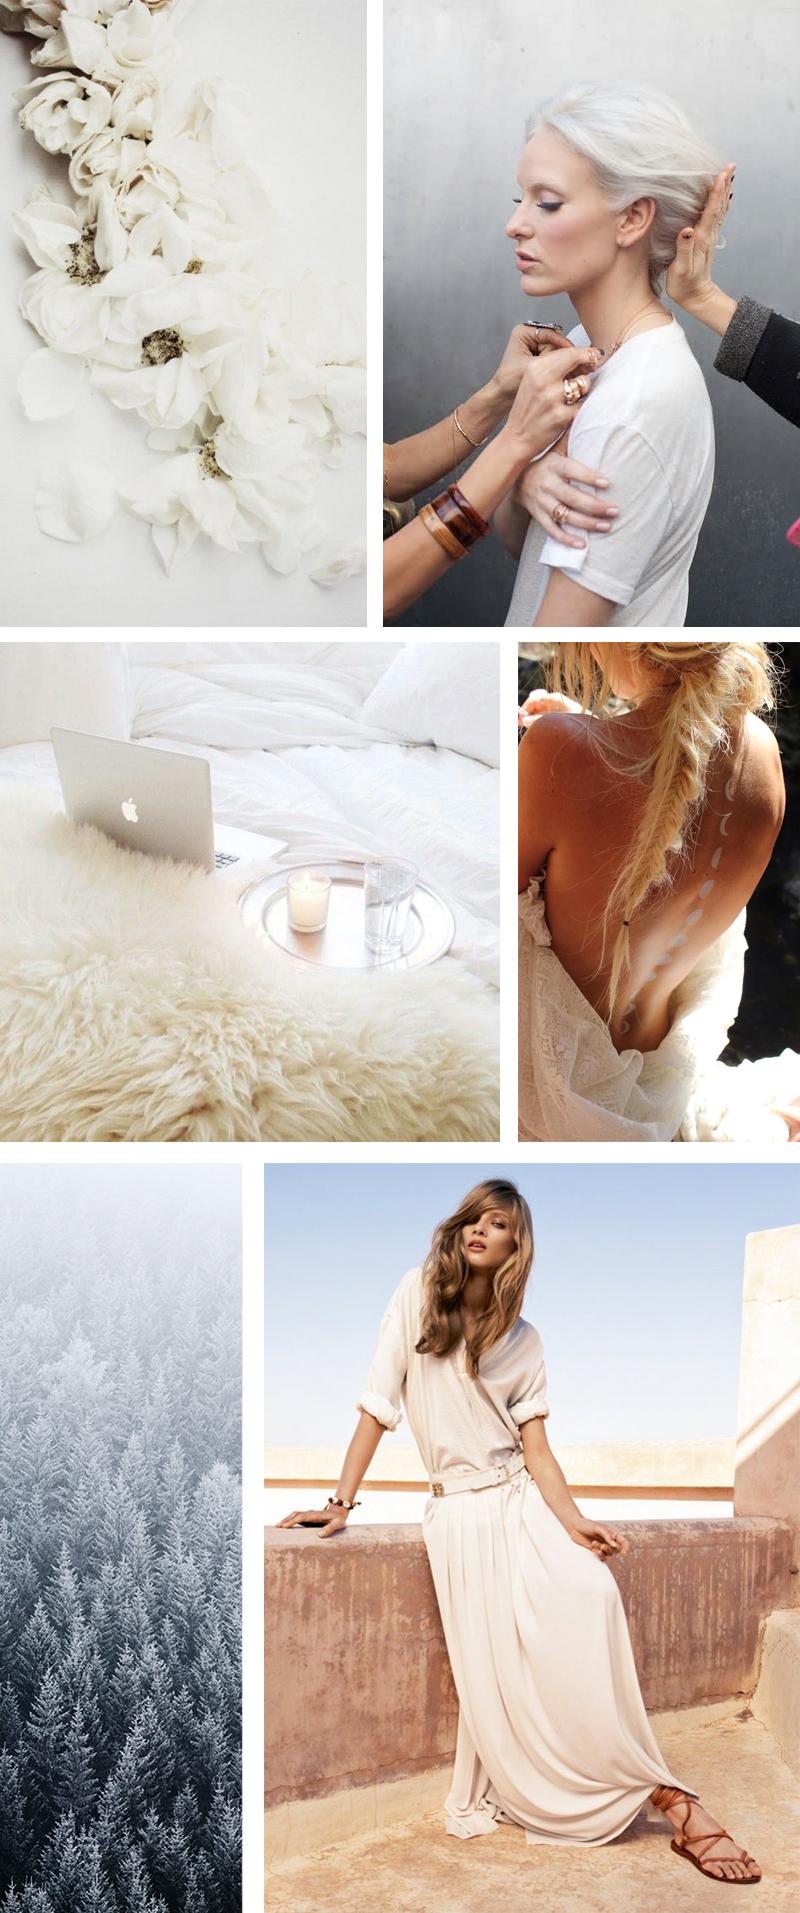 Noted: Winter White